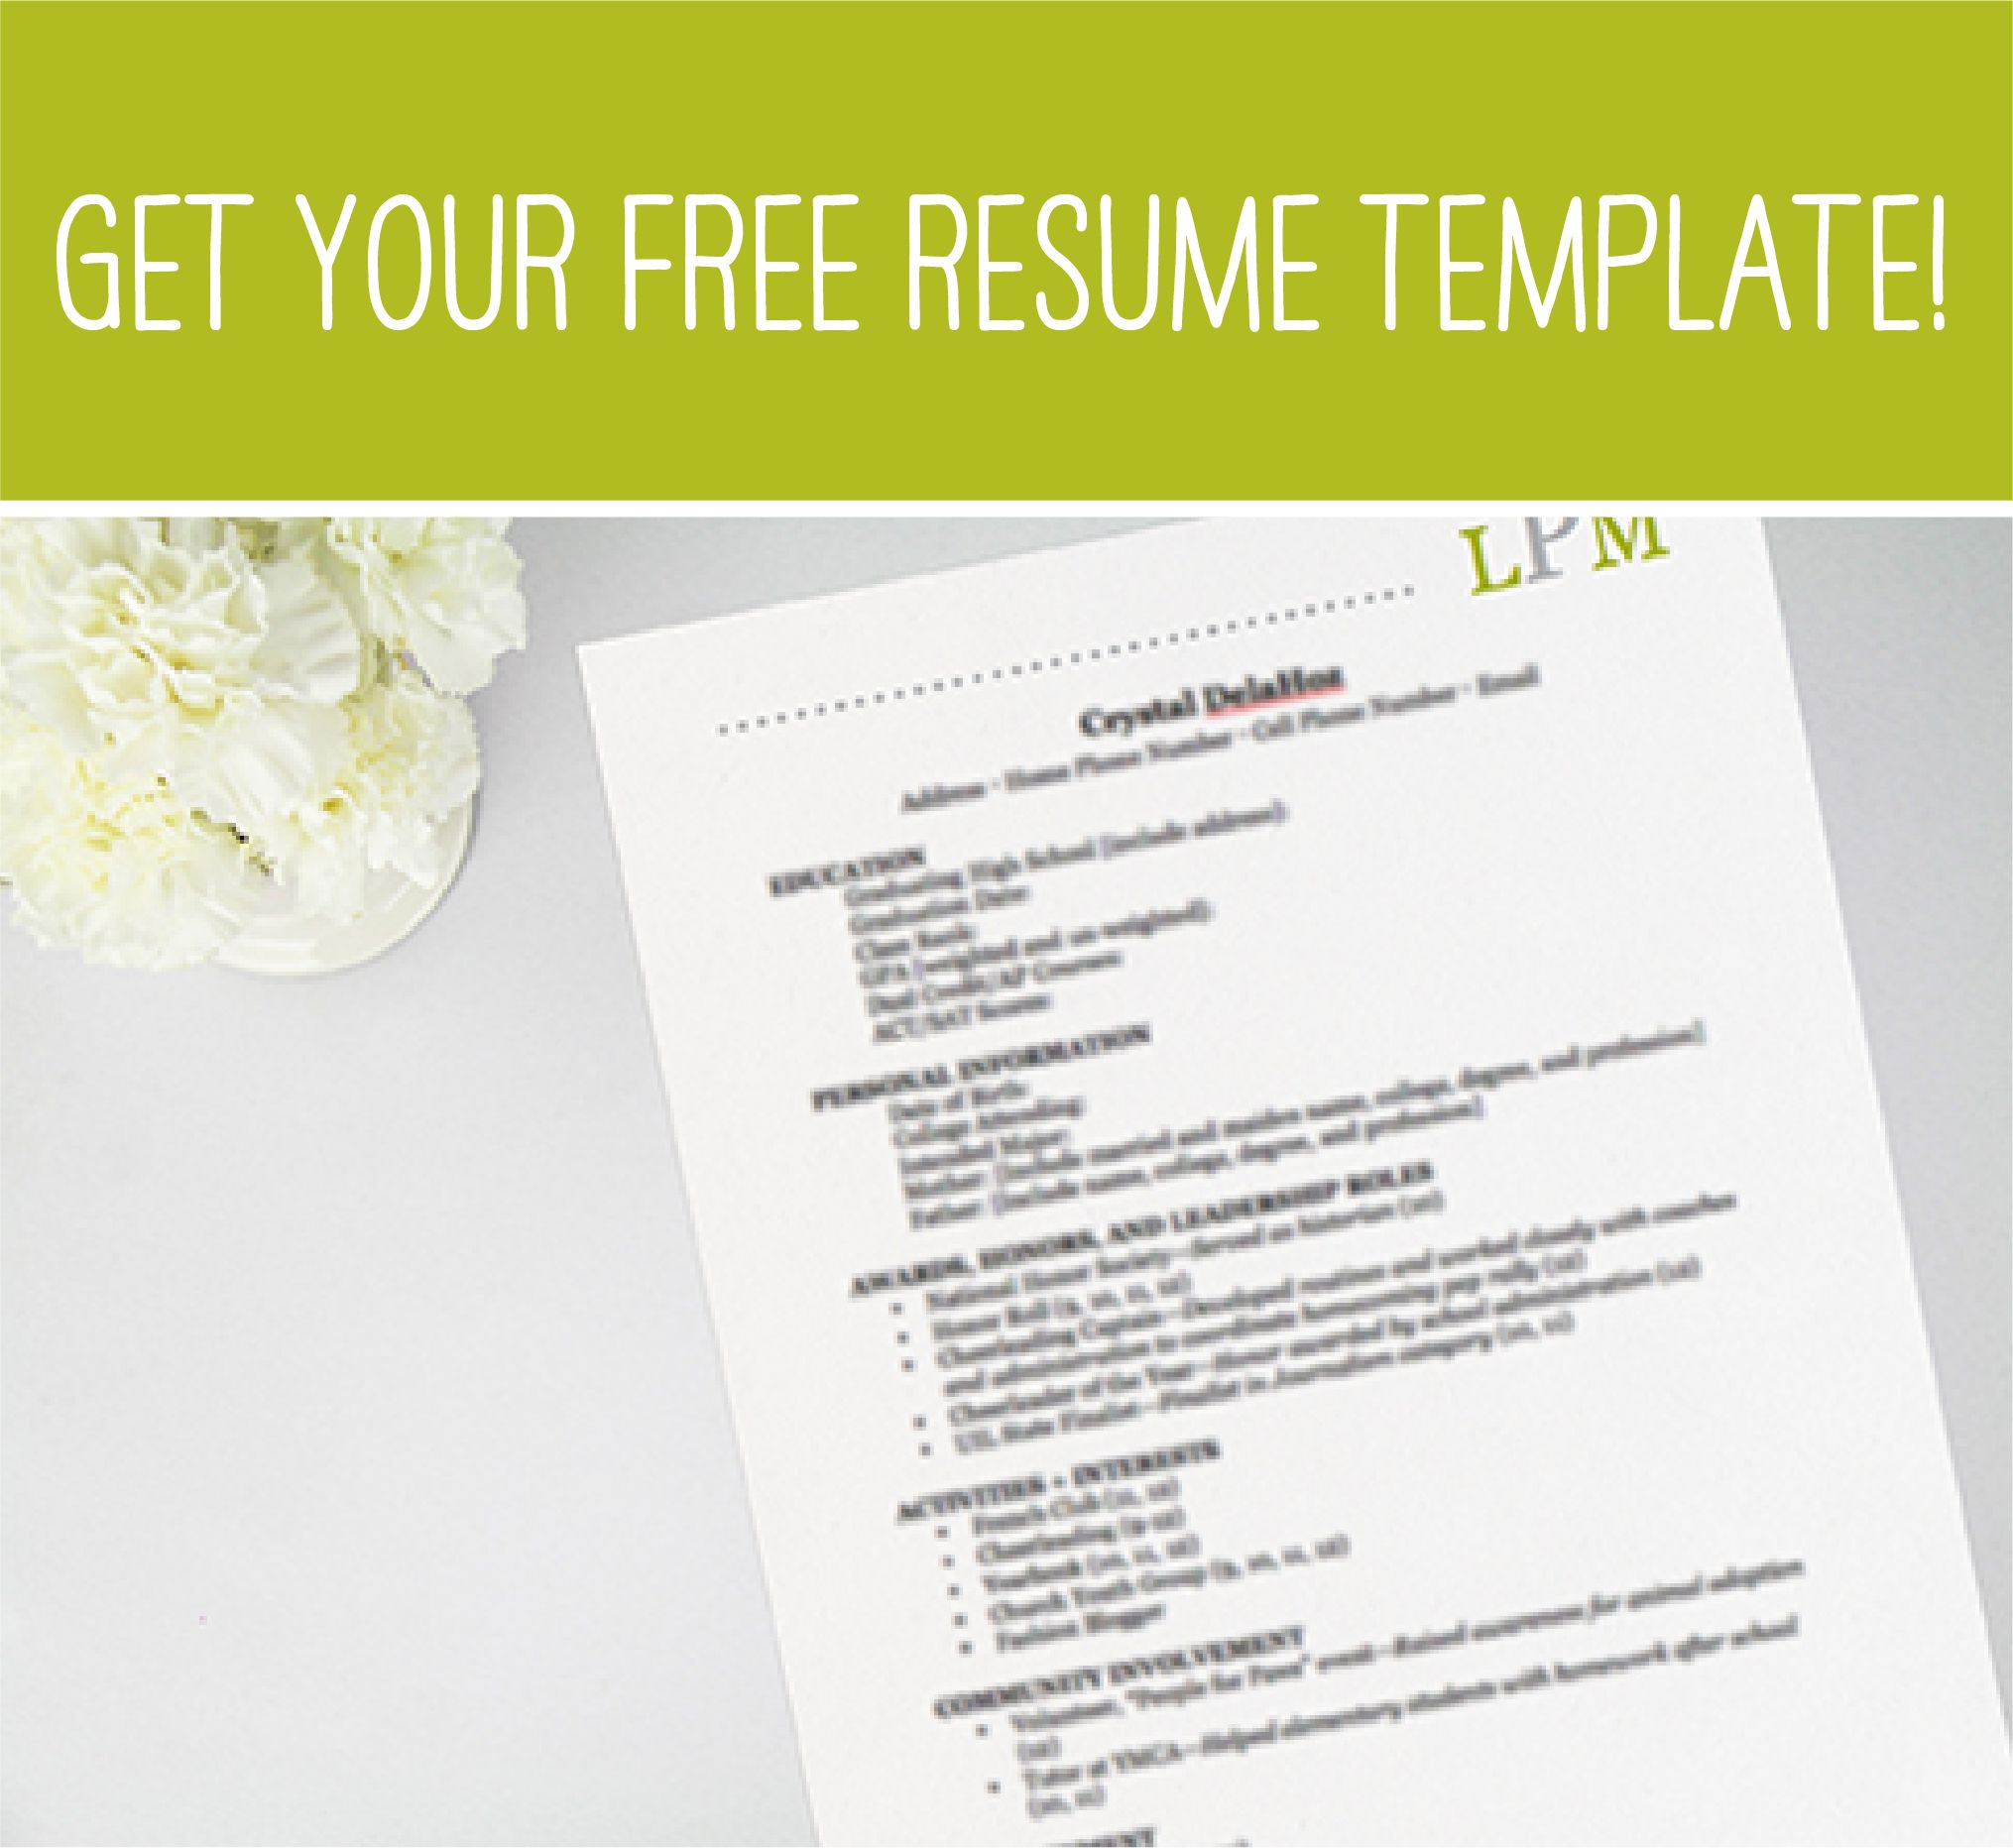 Template Of A Resume Free Rush Template Sorority Tips Sorority Resume Cover Letter